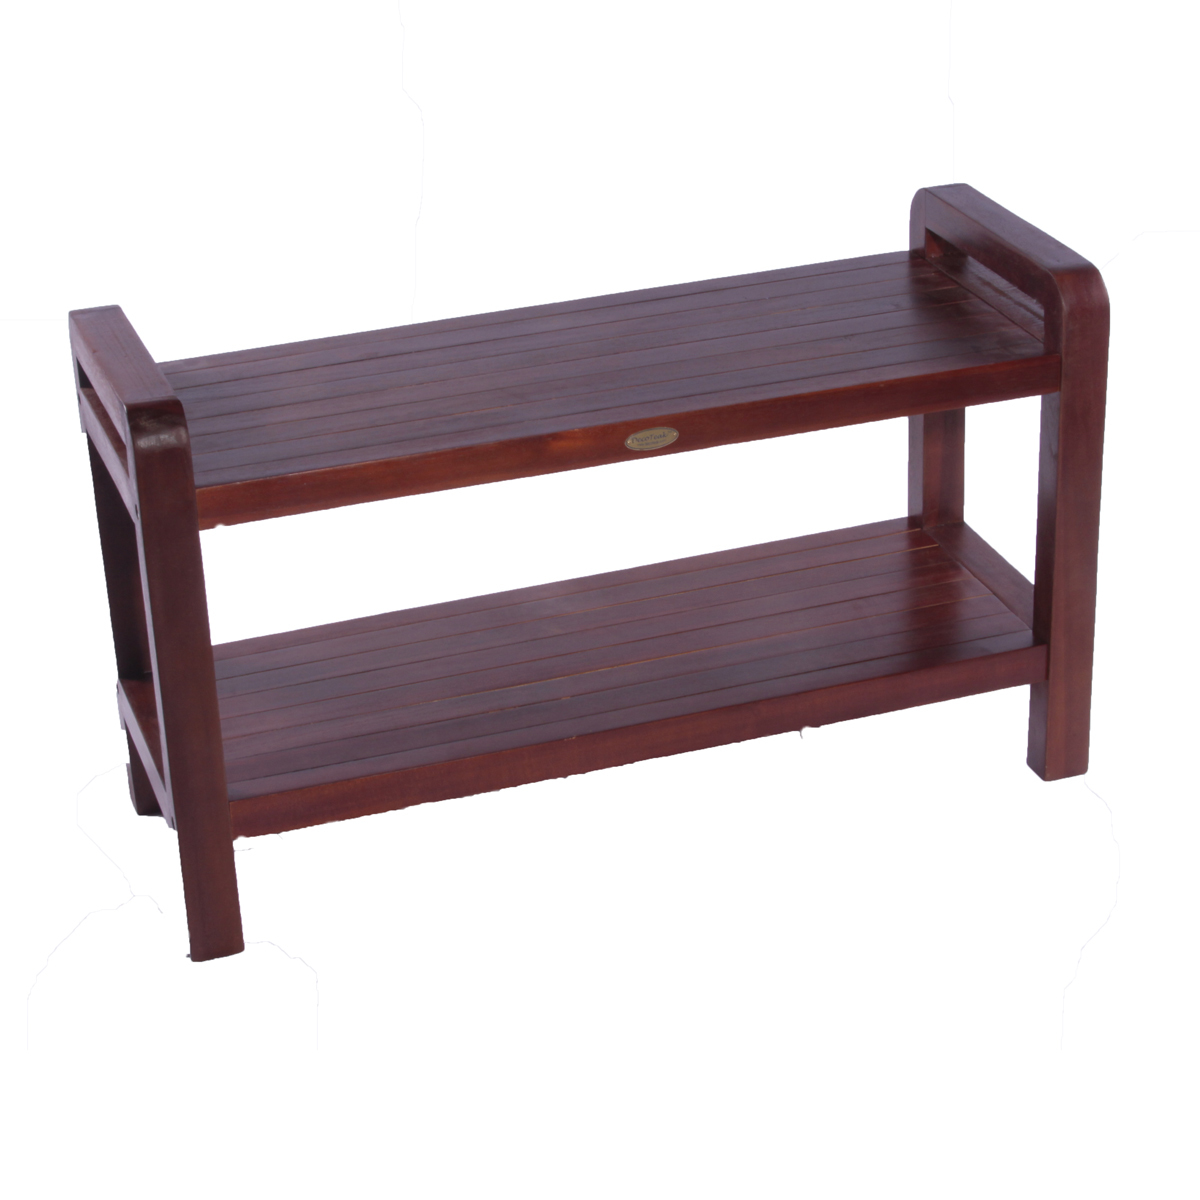 "Decoteak DT110 Classic 35"" Extended Length Ergonomic Teak Shower Stool with Liftaid Arms and Shelf"